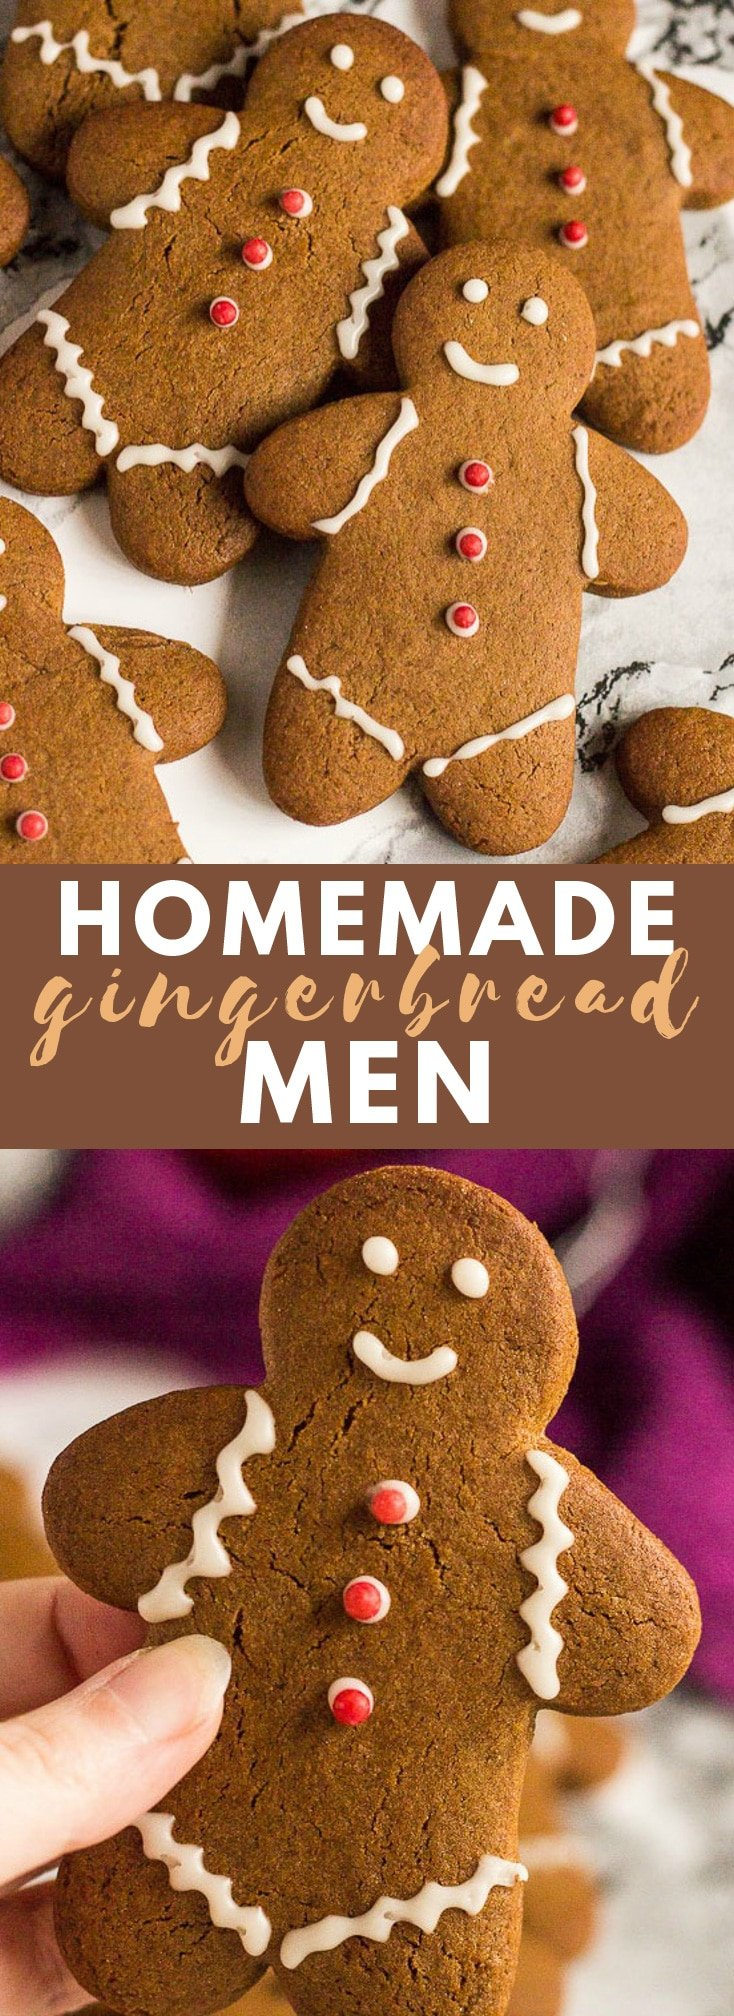 Gingerbread Men- Deliciously ginger-spiced cookies that are slightly soft on the inside, and crispy on the outside, and decorated with icing! #gingerbreadmen #gingercookies #cookierecipes #christmascookies #christmasrecipes